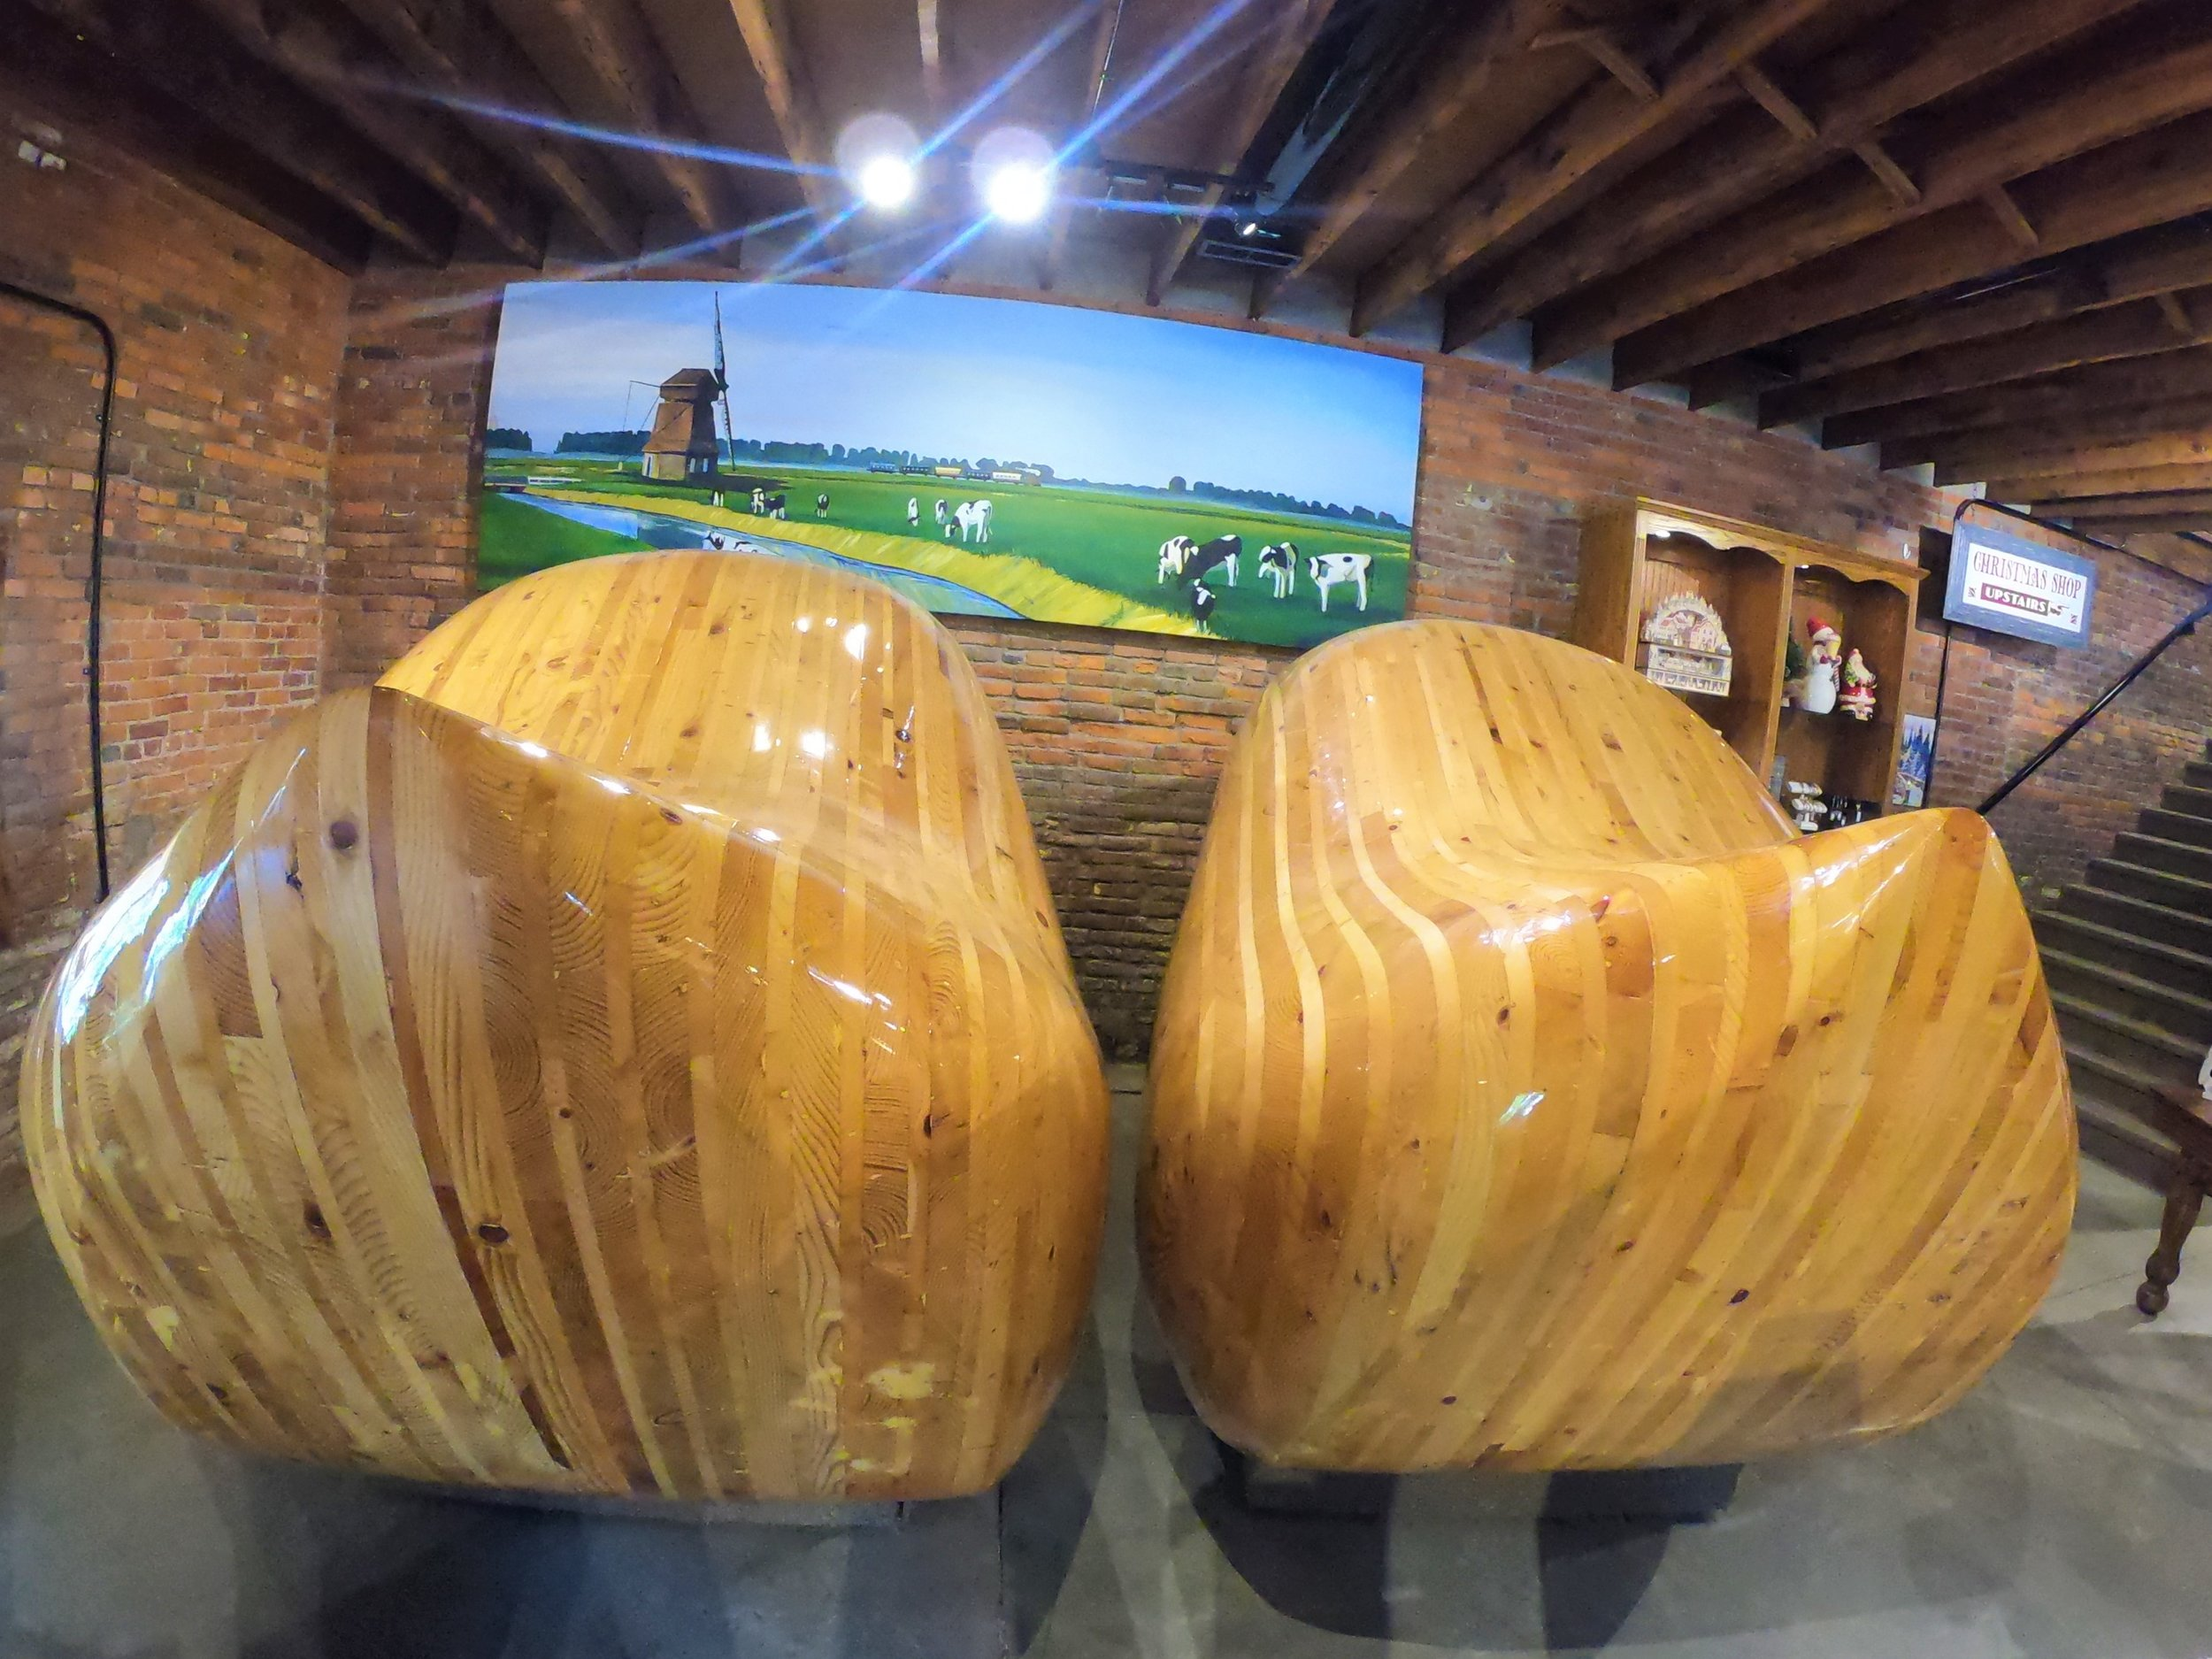 World's Largest Wooden Shoes in Casey, Illinois